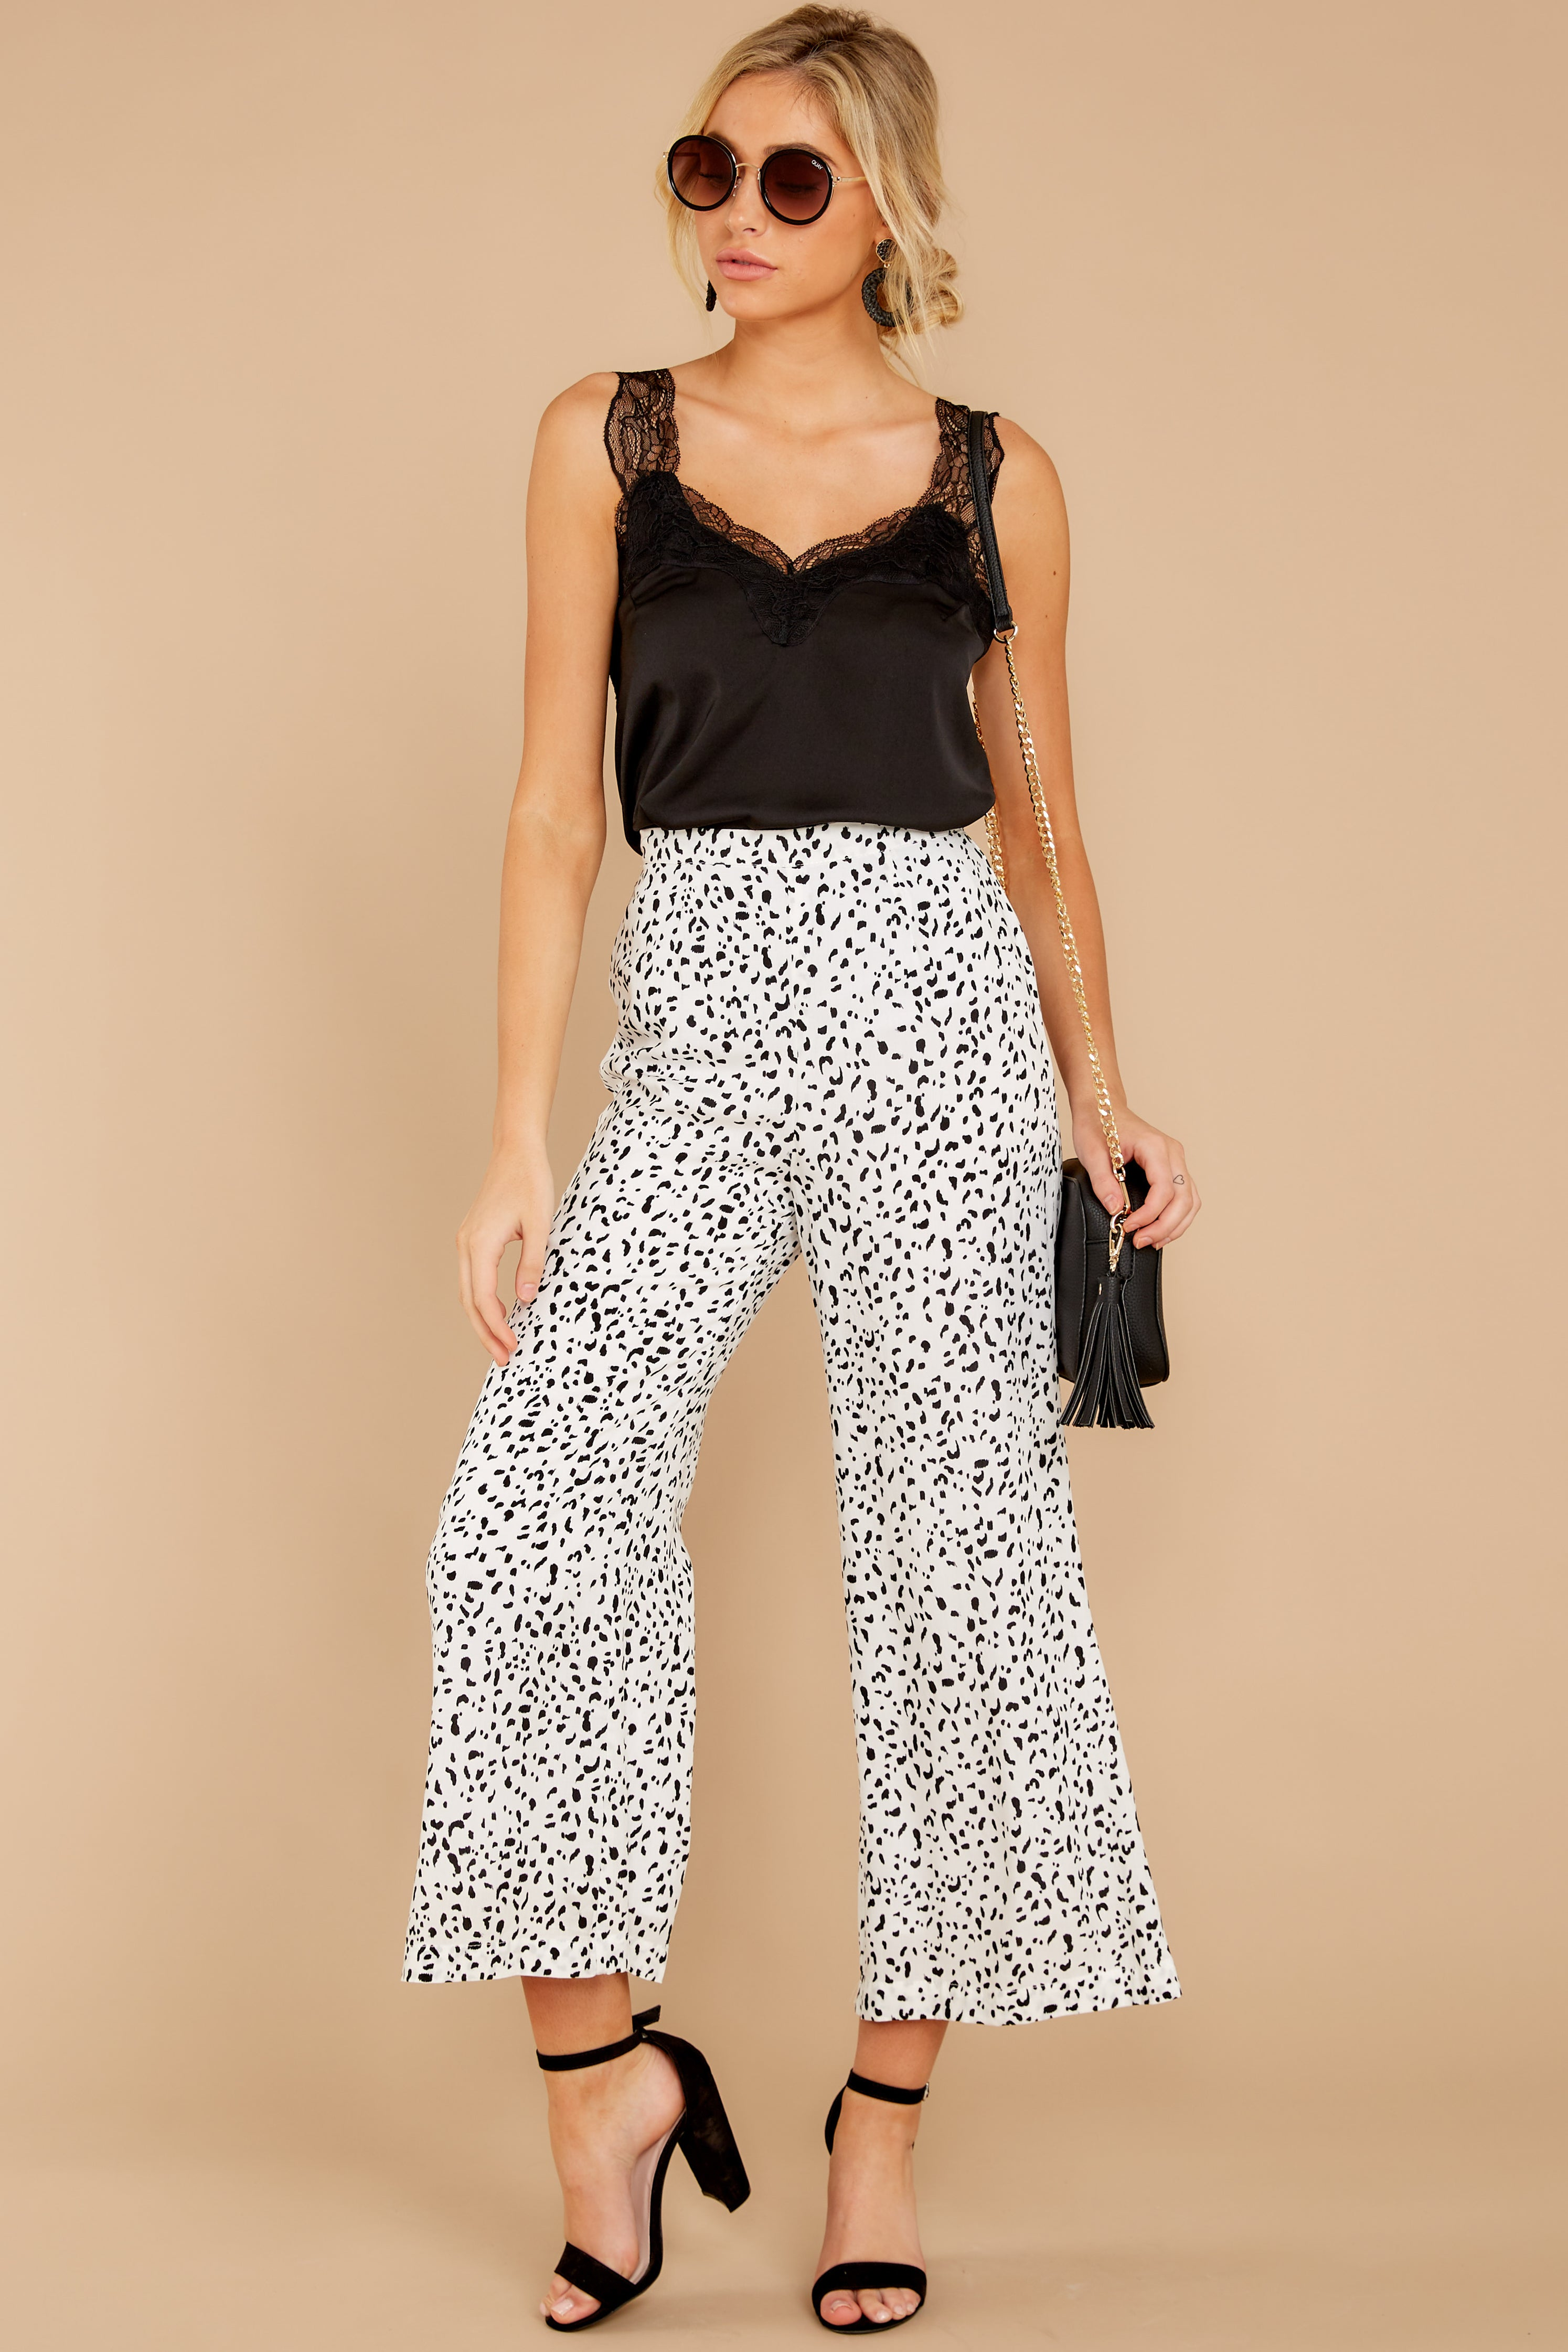 6 On The Lookout White Cheetah Print Pants at reddress.com